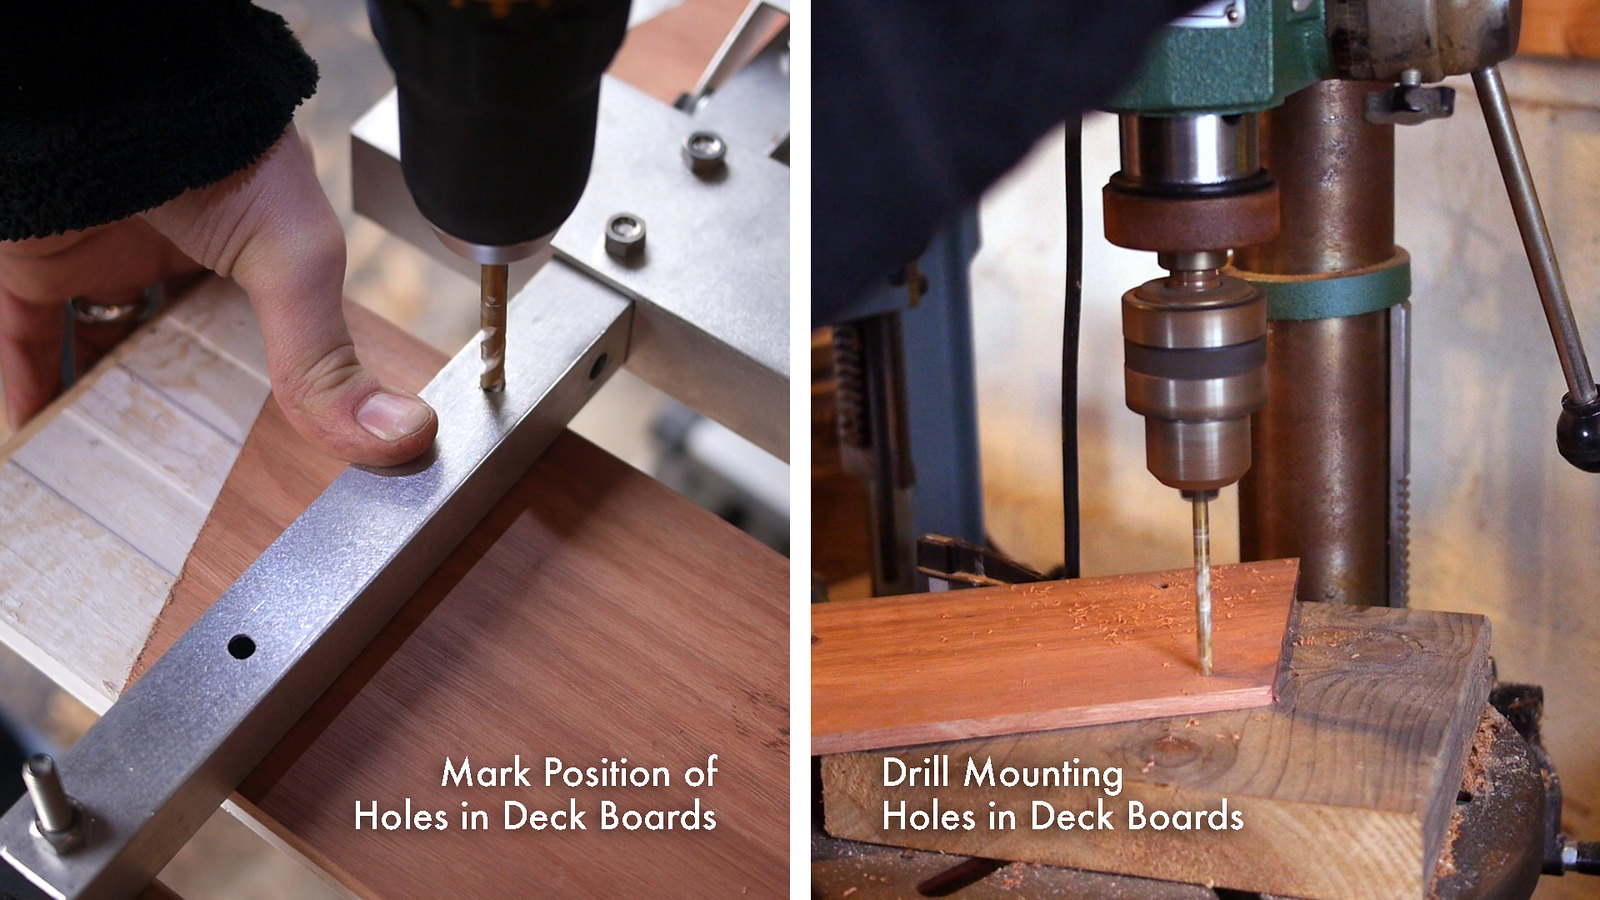 Drill Holes in Deck Boards